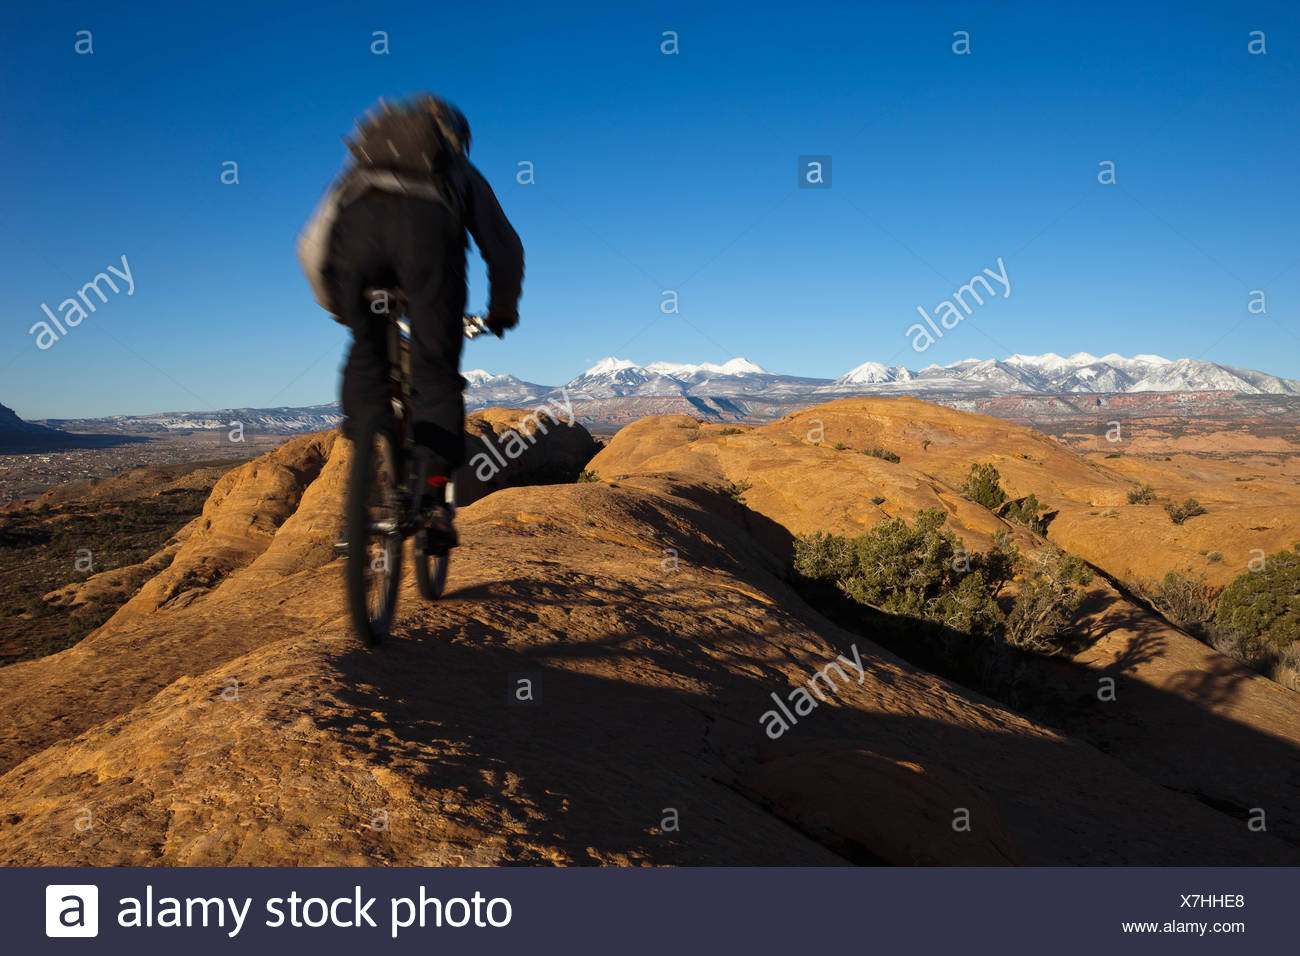 Mountain biker riding on the slickrock trail in Moab, Utah with views of faraway mountains. - Stock Image